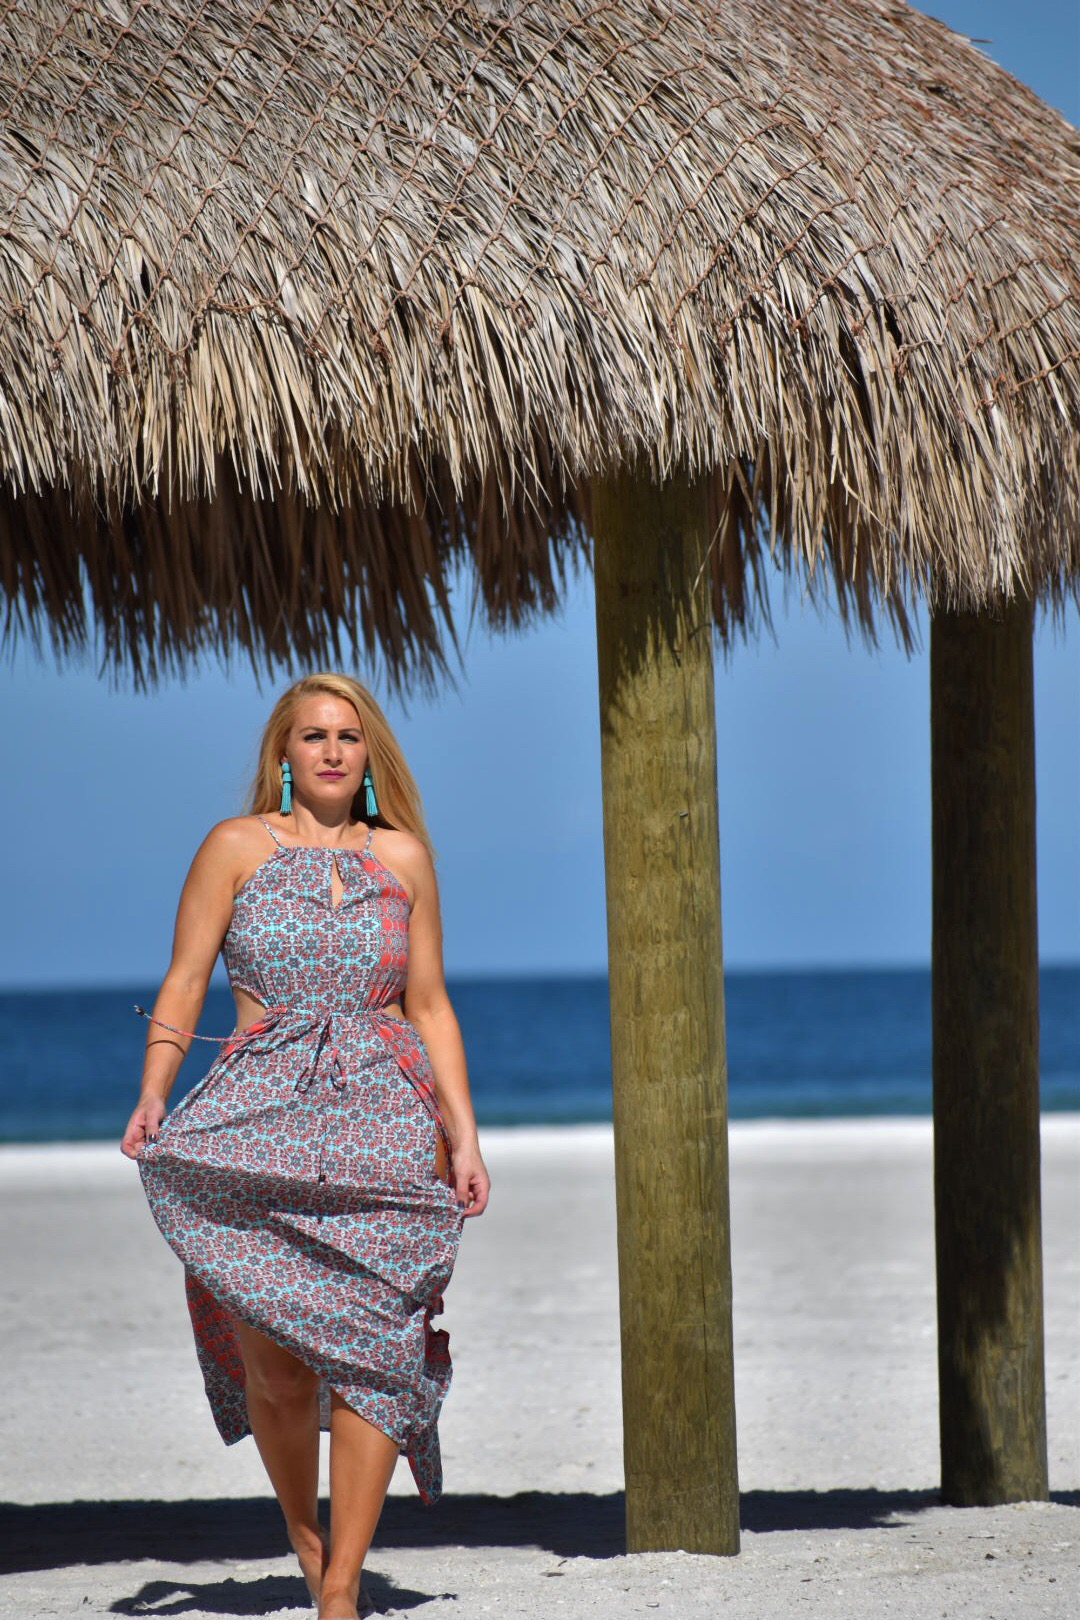 Raga Dress, Boho Chic, Halter Dress, Bohemian Style Dress with Tassel Earrings in Marco Island Florida